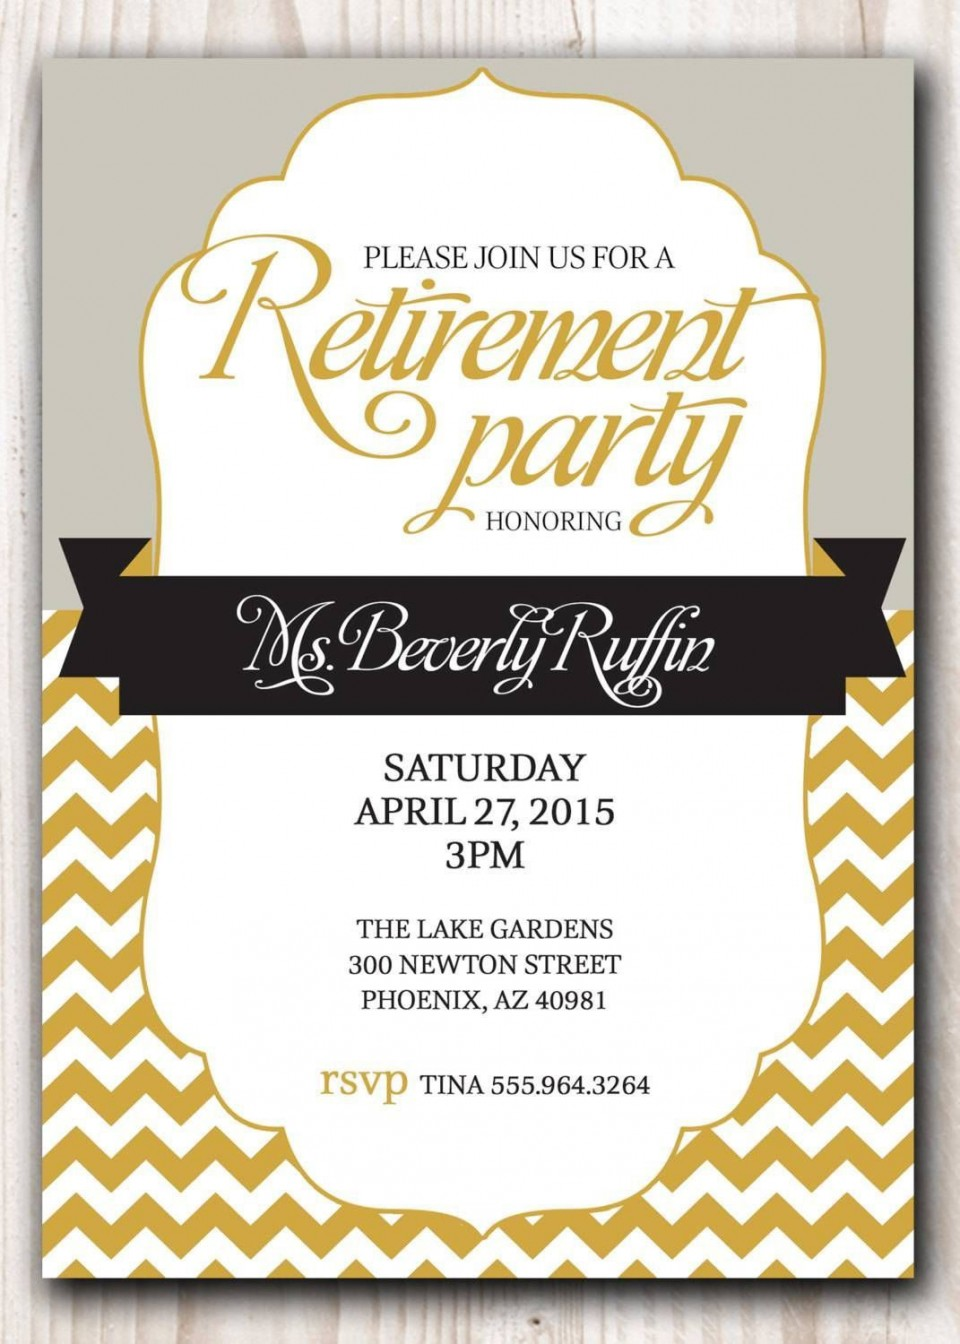 007 Awesome Retirement Invitation Template Free Highest Quality  Party Printable For Word960